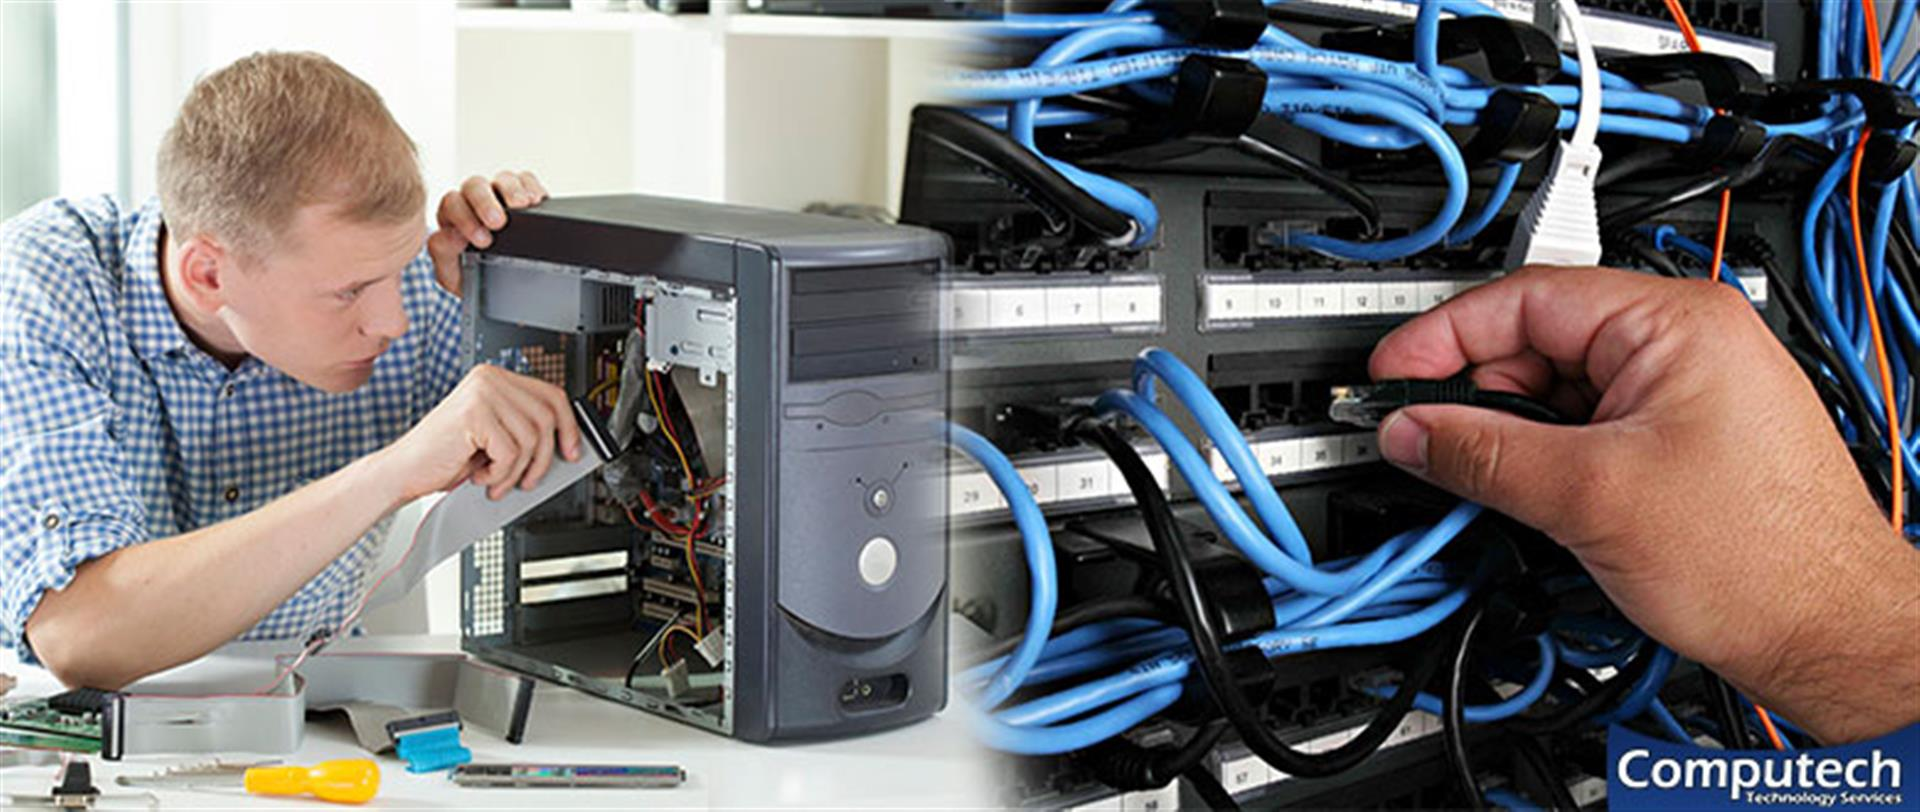 Lakesite Tennessee On-Site Computer and Printer Repairs, Networking, Voice & Data Cabling Services